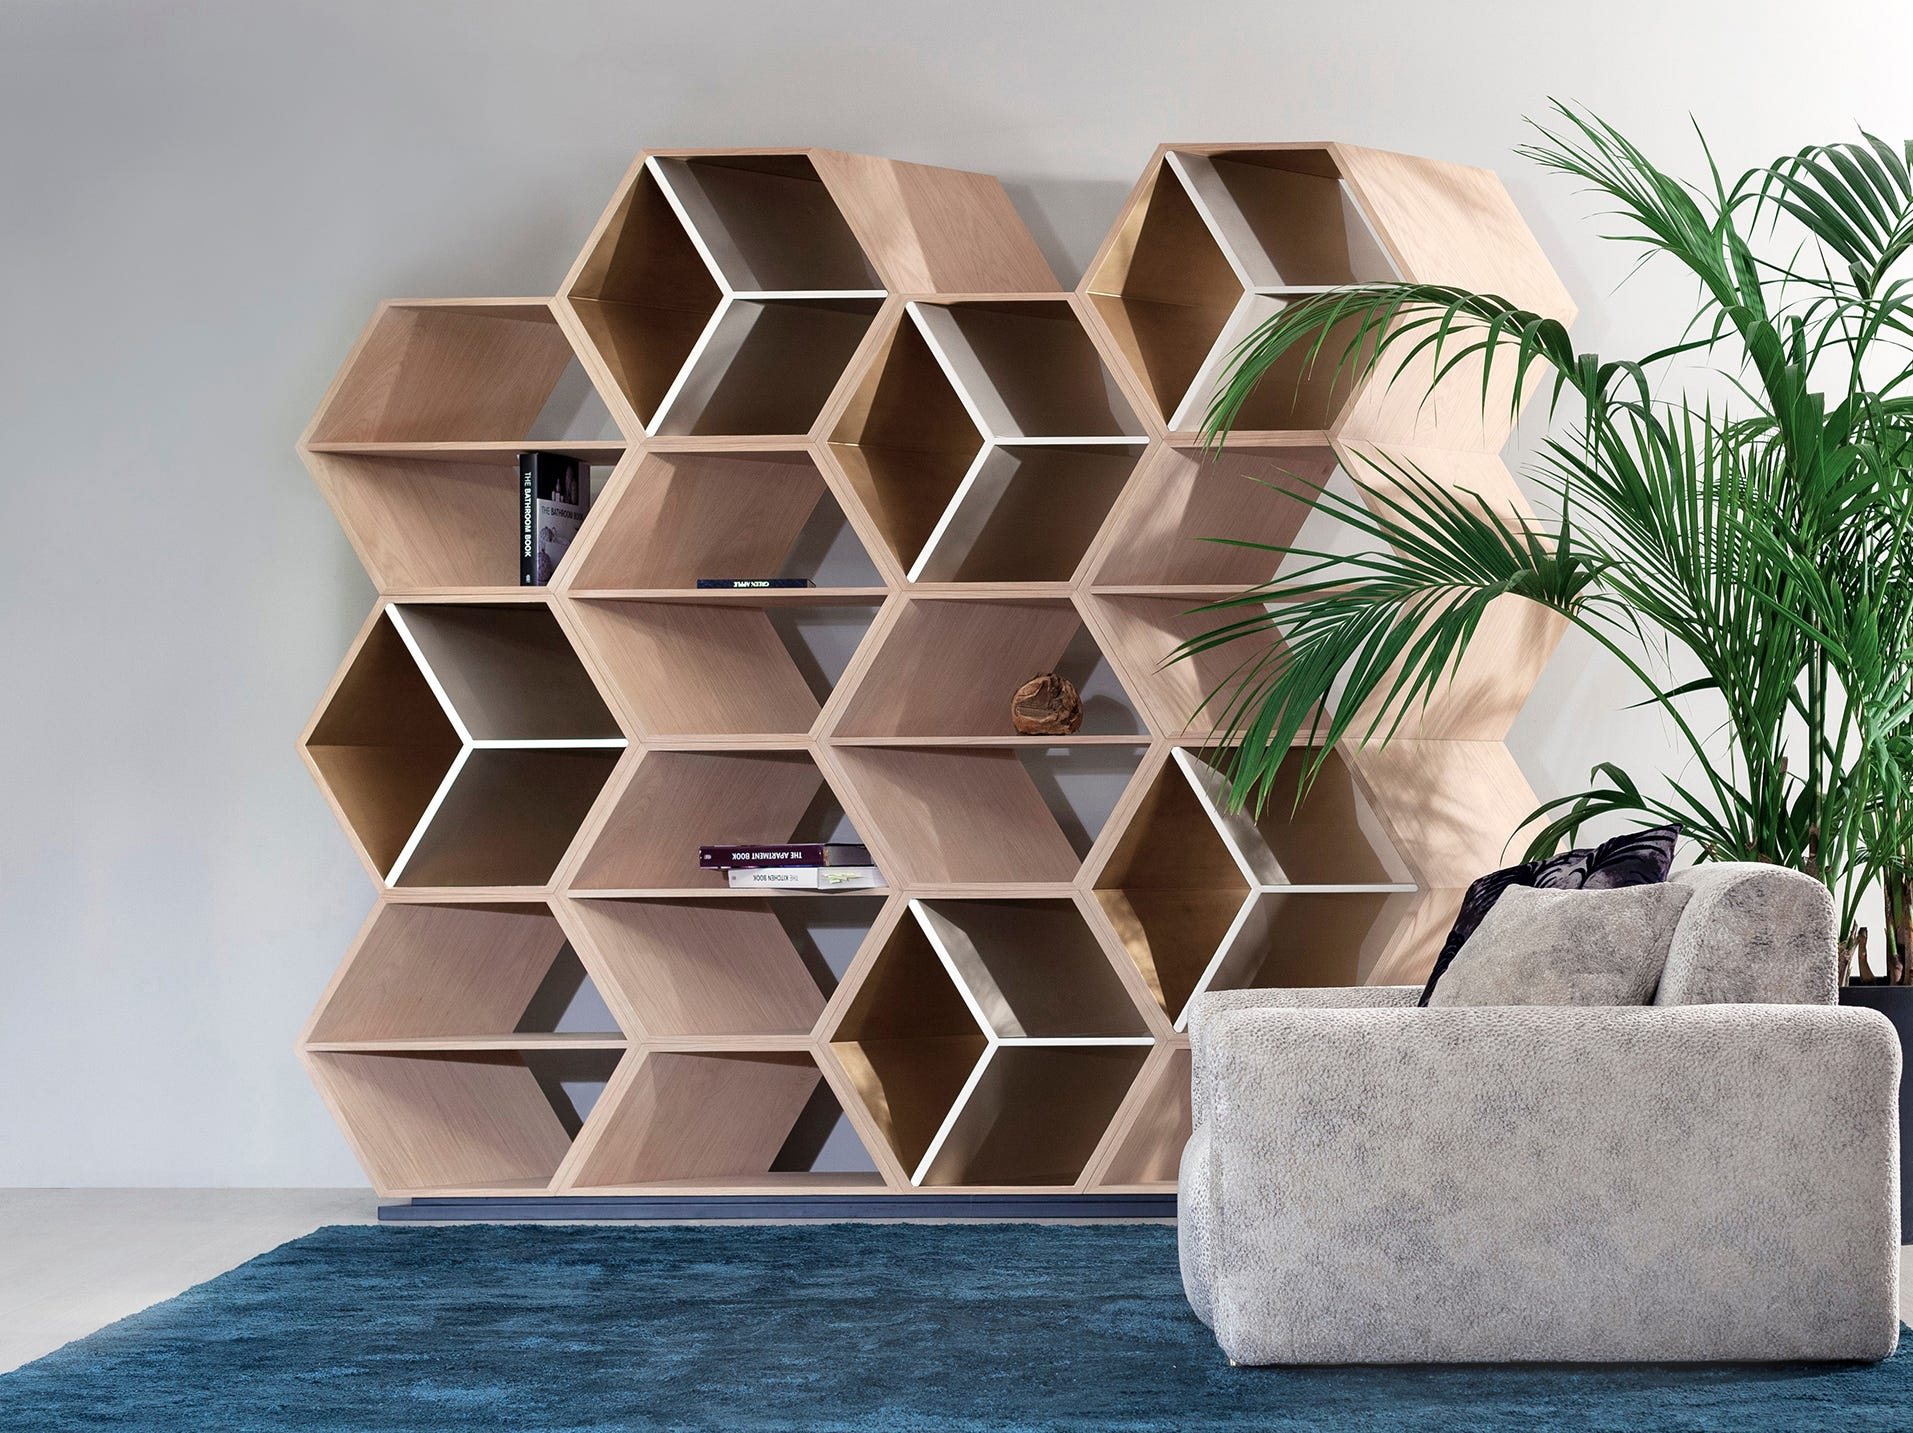 Hexagonal box shapes take on a new dimension, laid up on a diagonal, creating a wooden beehive-like solution to storage from Green Apple. The natural American oak wooden bookcase is lacquered in high-gloss cream, strategically punctuated with details in high-gloss bronze powder champagne and semi-gloss oxidized gold applied by hand. The barely there base is lacquered in semi-gloss black. The bookcase is 105.1 inches wide, 91.7 inches tall and 15.7 inches deep.